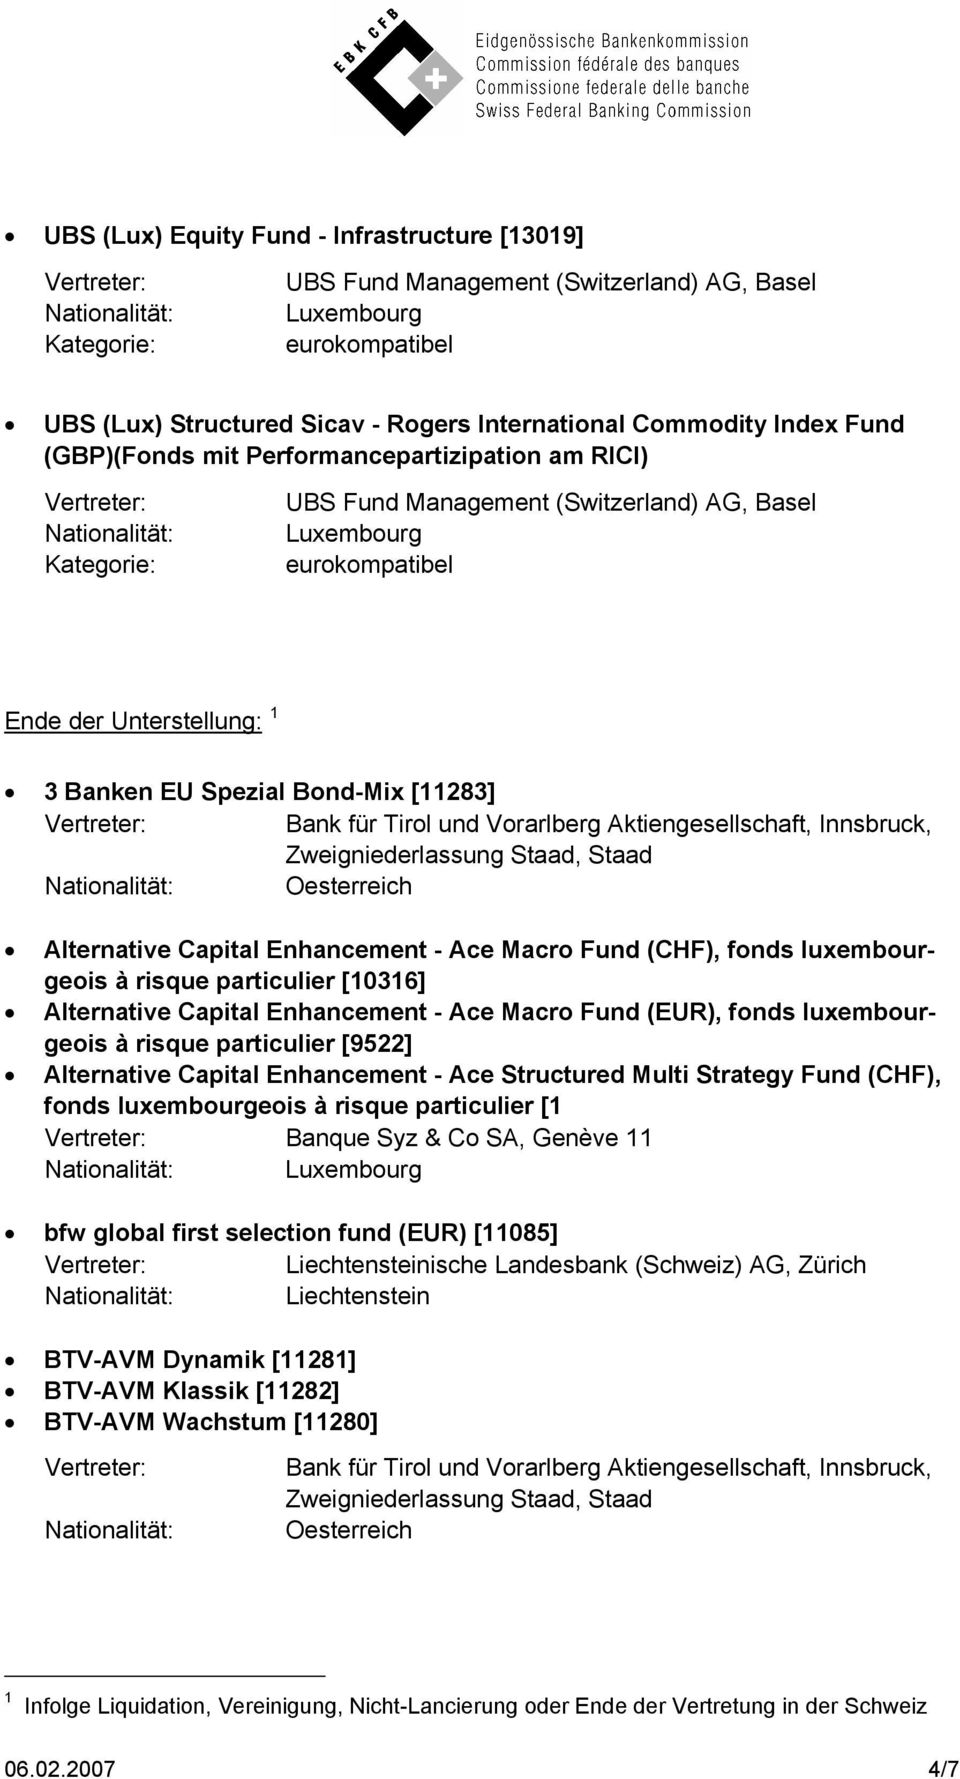 Innsbruck, Zweigniederlassung Staad, Staad Oesterreich Alternative Capital Enhancement - Ace Macro Fund (CHF), fonds luxembourgeois à risque particulier [10316] Alternative Capital Enhancement - Ace